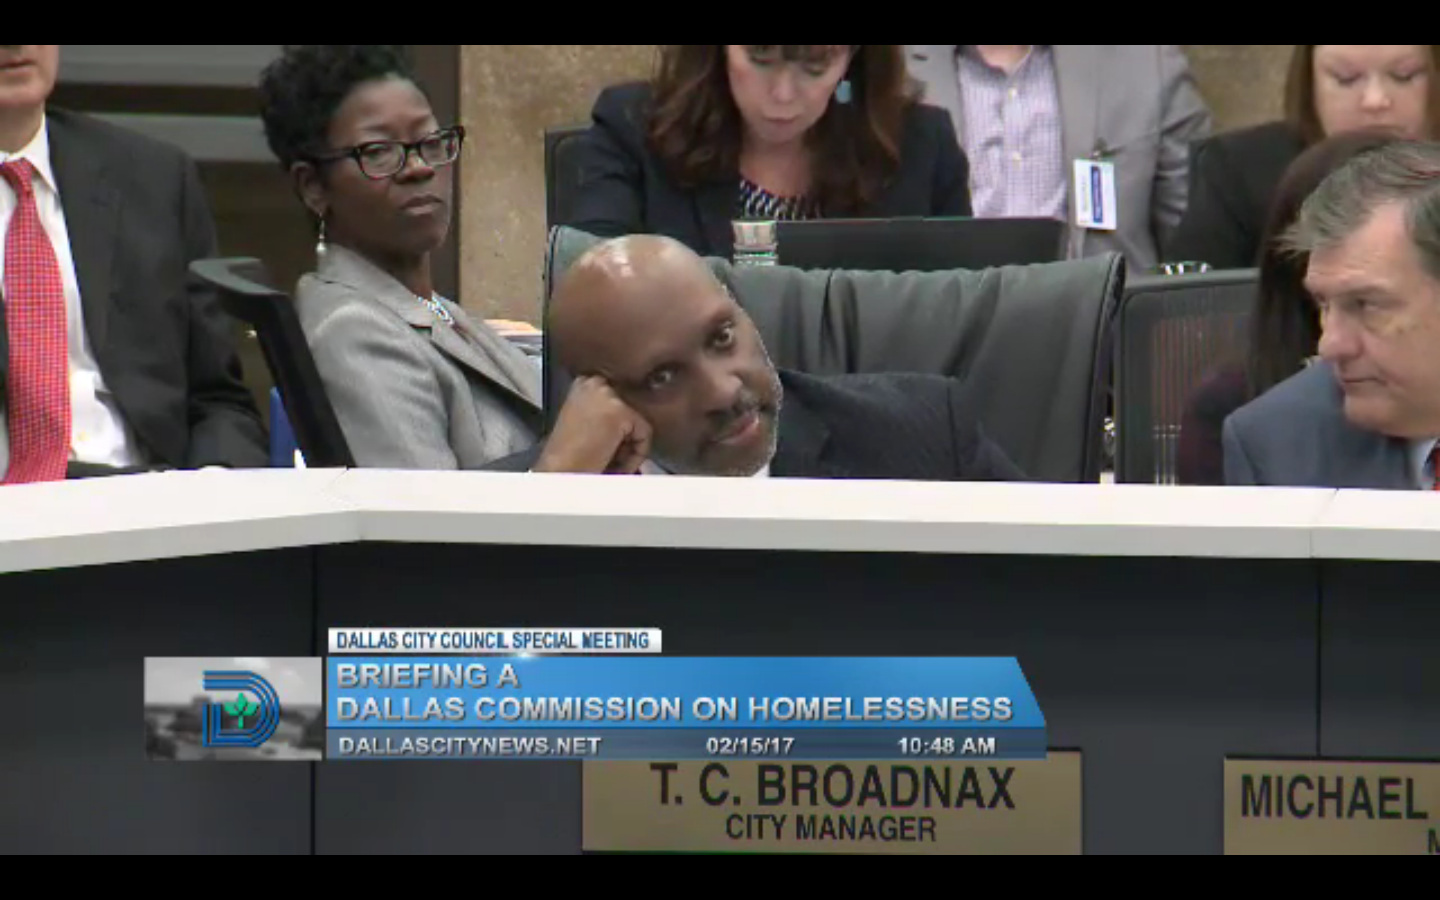 T.C. Broadnax hasn't been here long, but he already looks tired of the B.S.